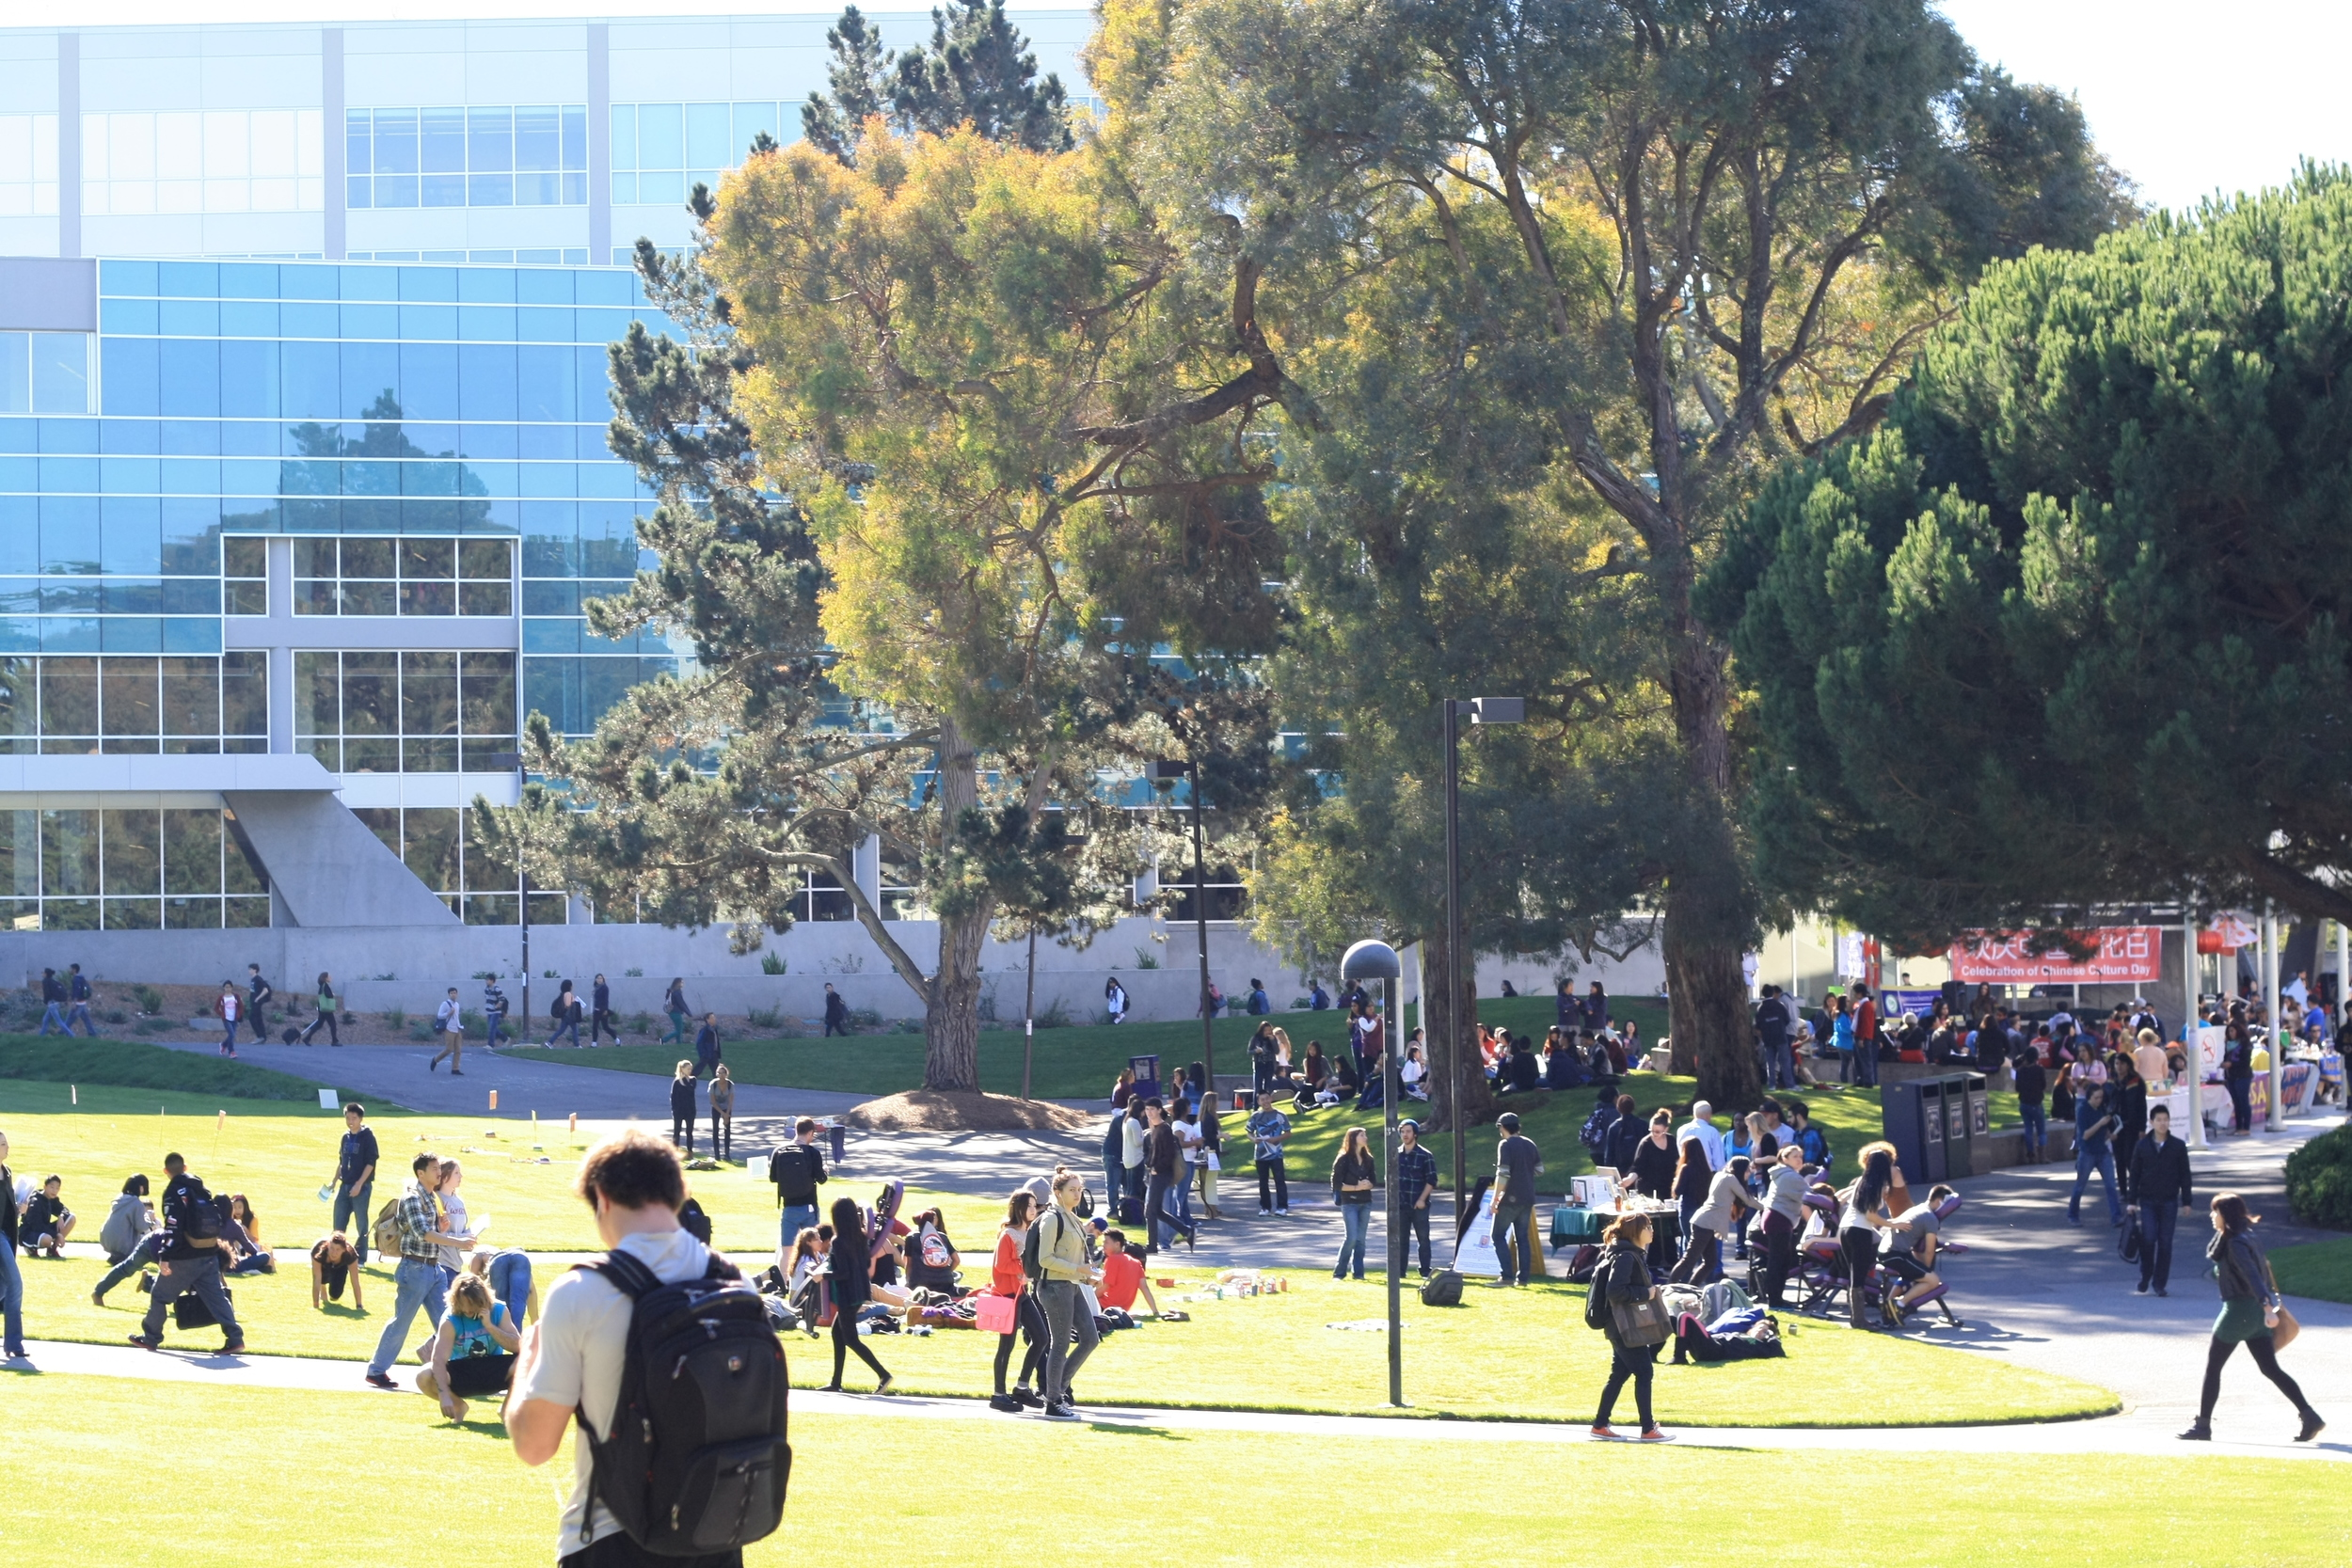 During the academic year, the blocks surrounding San Francisco State University's campus are lively with students walking to and from classes.